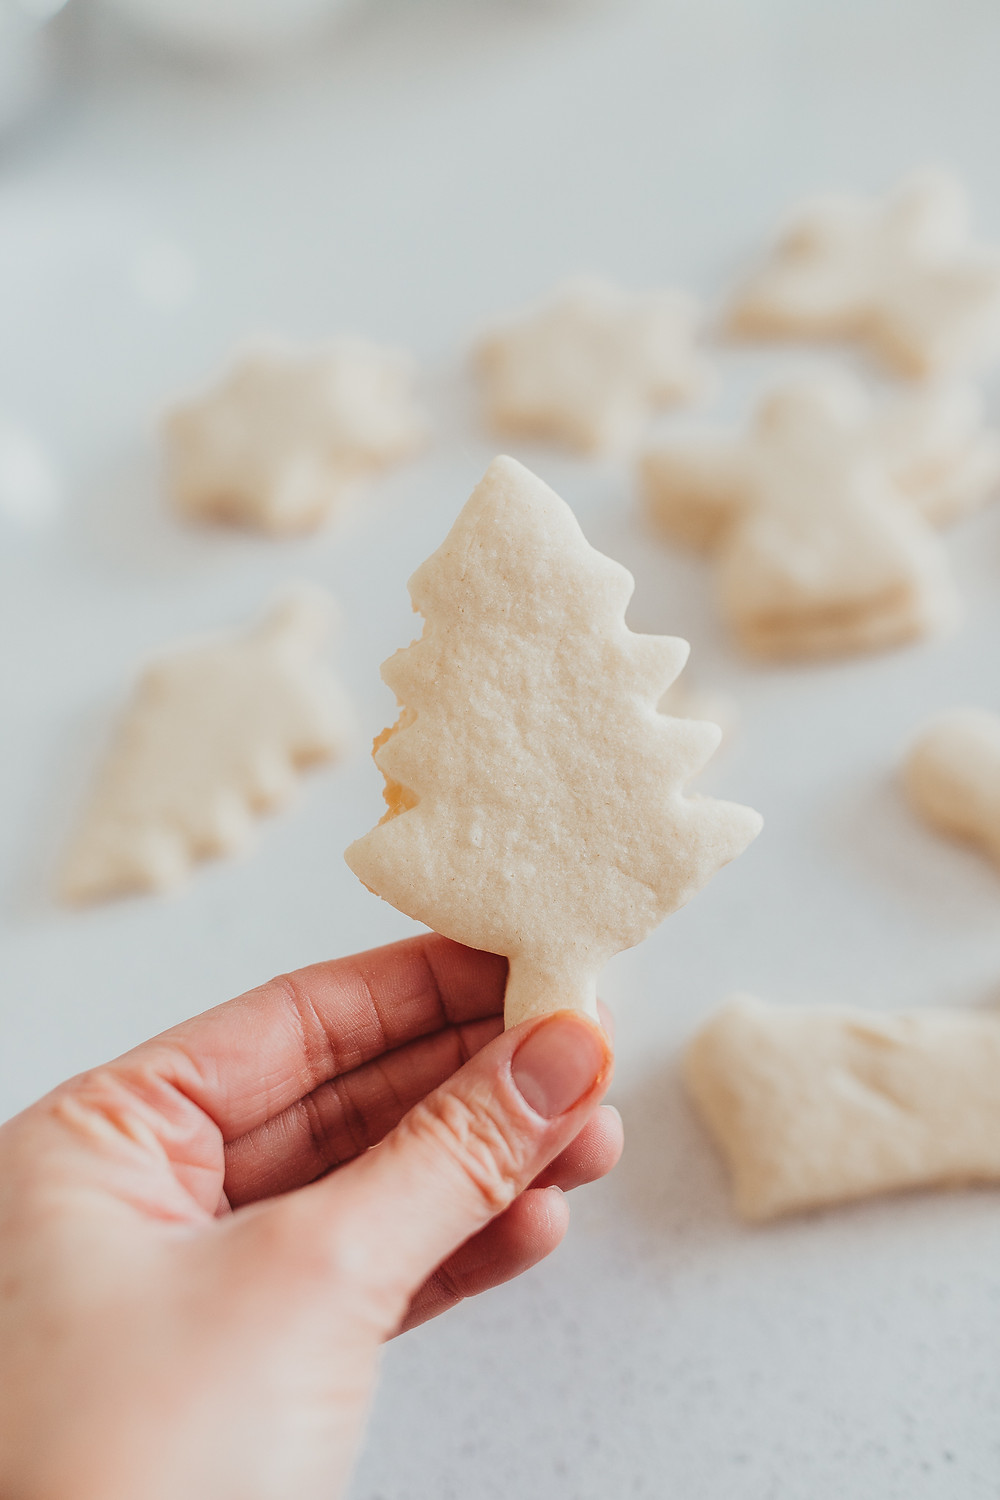 A woman's hand holding up a fresh baked sugar cookie in the shape of a tree.